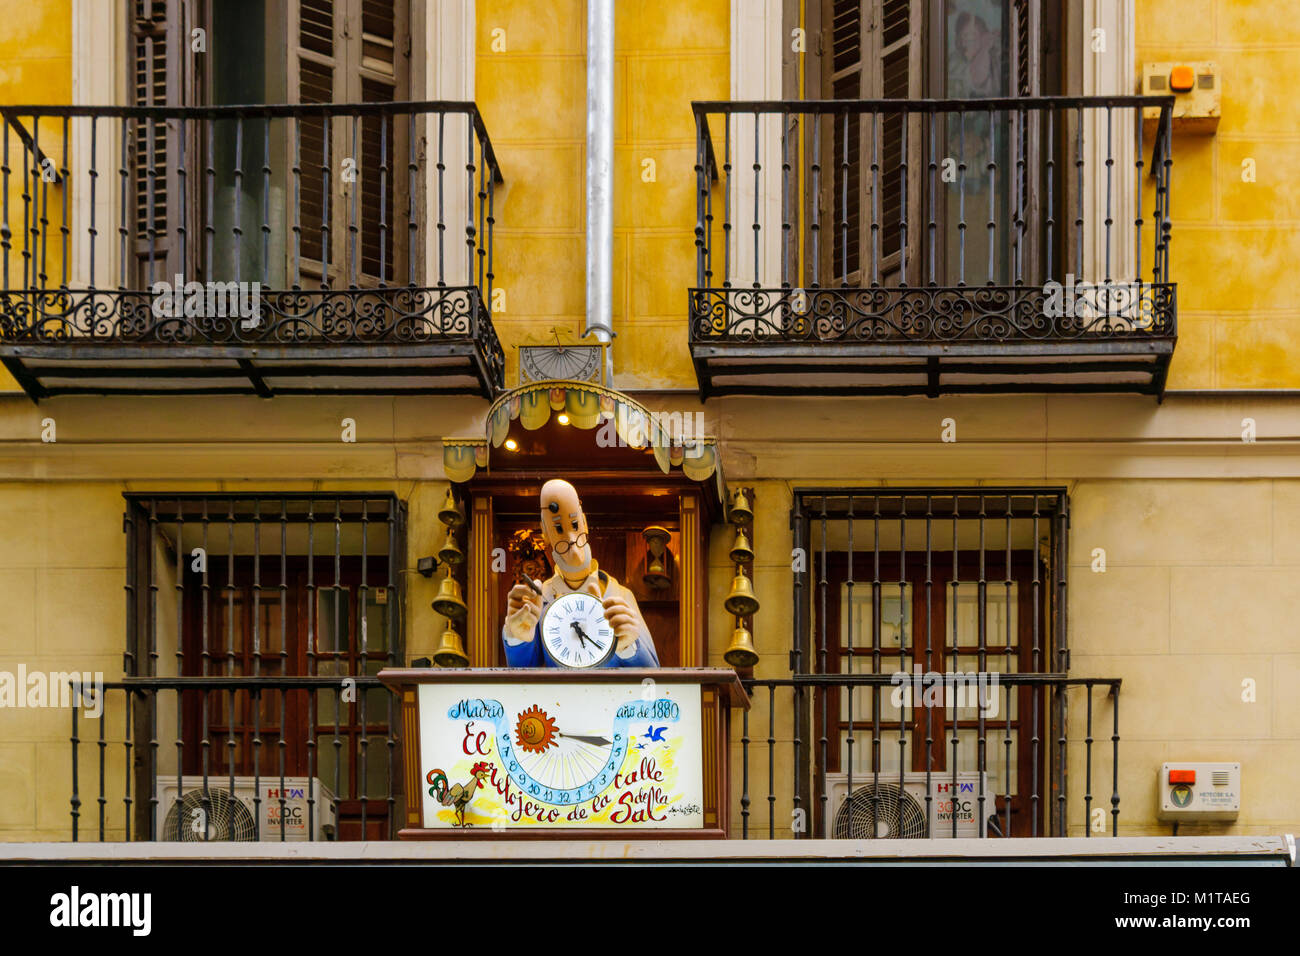 MADRID, SPAIN - DECEMBER 31, 2017: Figure of a clockmaker, marking an historical clock shop, in Madrid, Spain - Stock Image